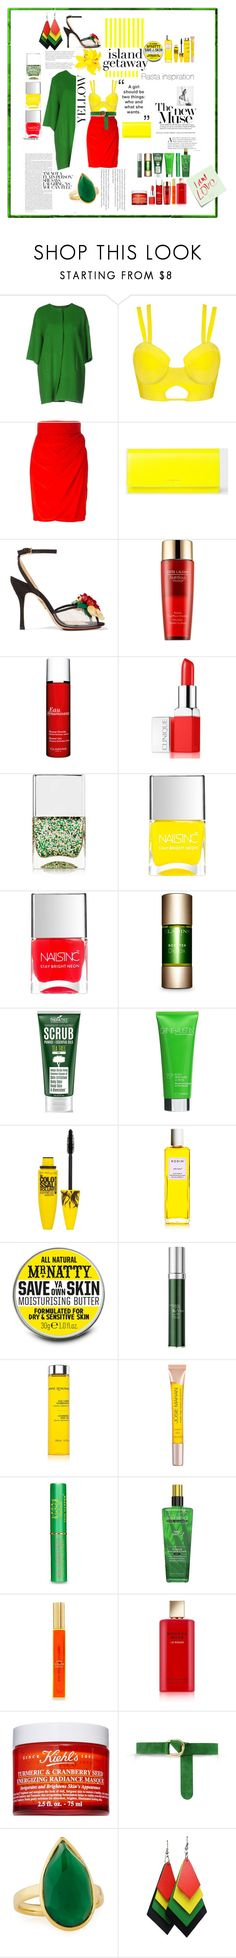 """""""Coloré"""" by liligwada ❤ liked on Polyvore featuring P.A.R.O.S.H., Versace, PS Paul Smith, Charlotte Olympia, Estée Lauder, Clarins, Clinique, Nails Inc., Cane + Austin and Maybelline"""